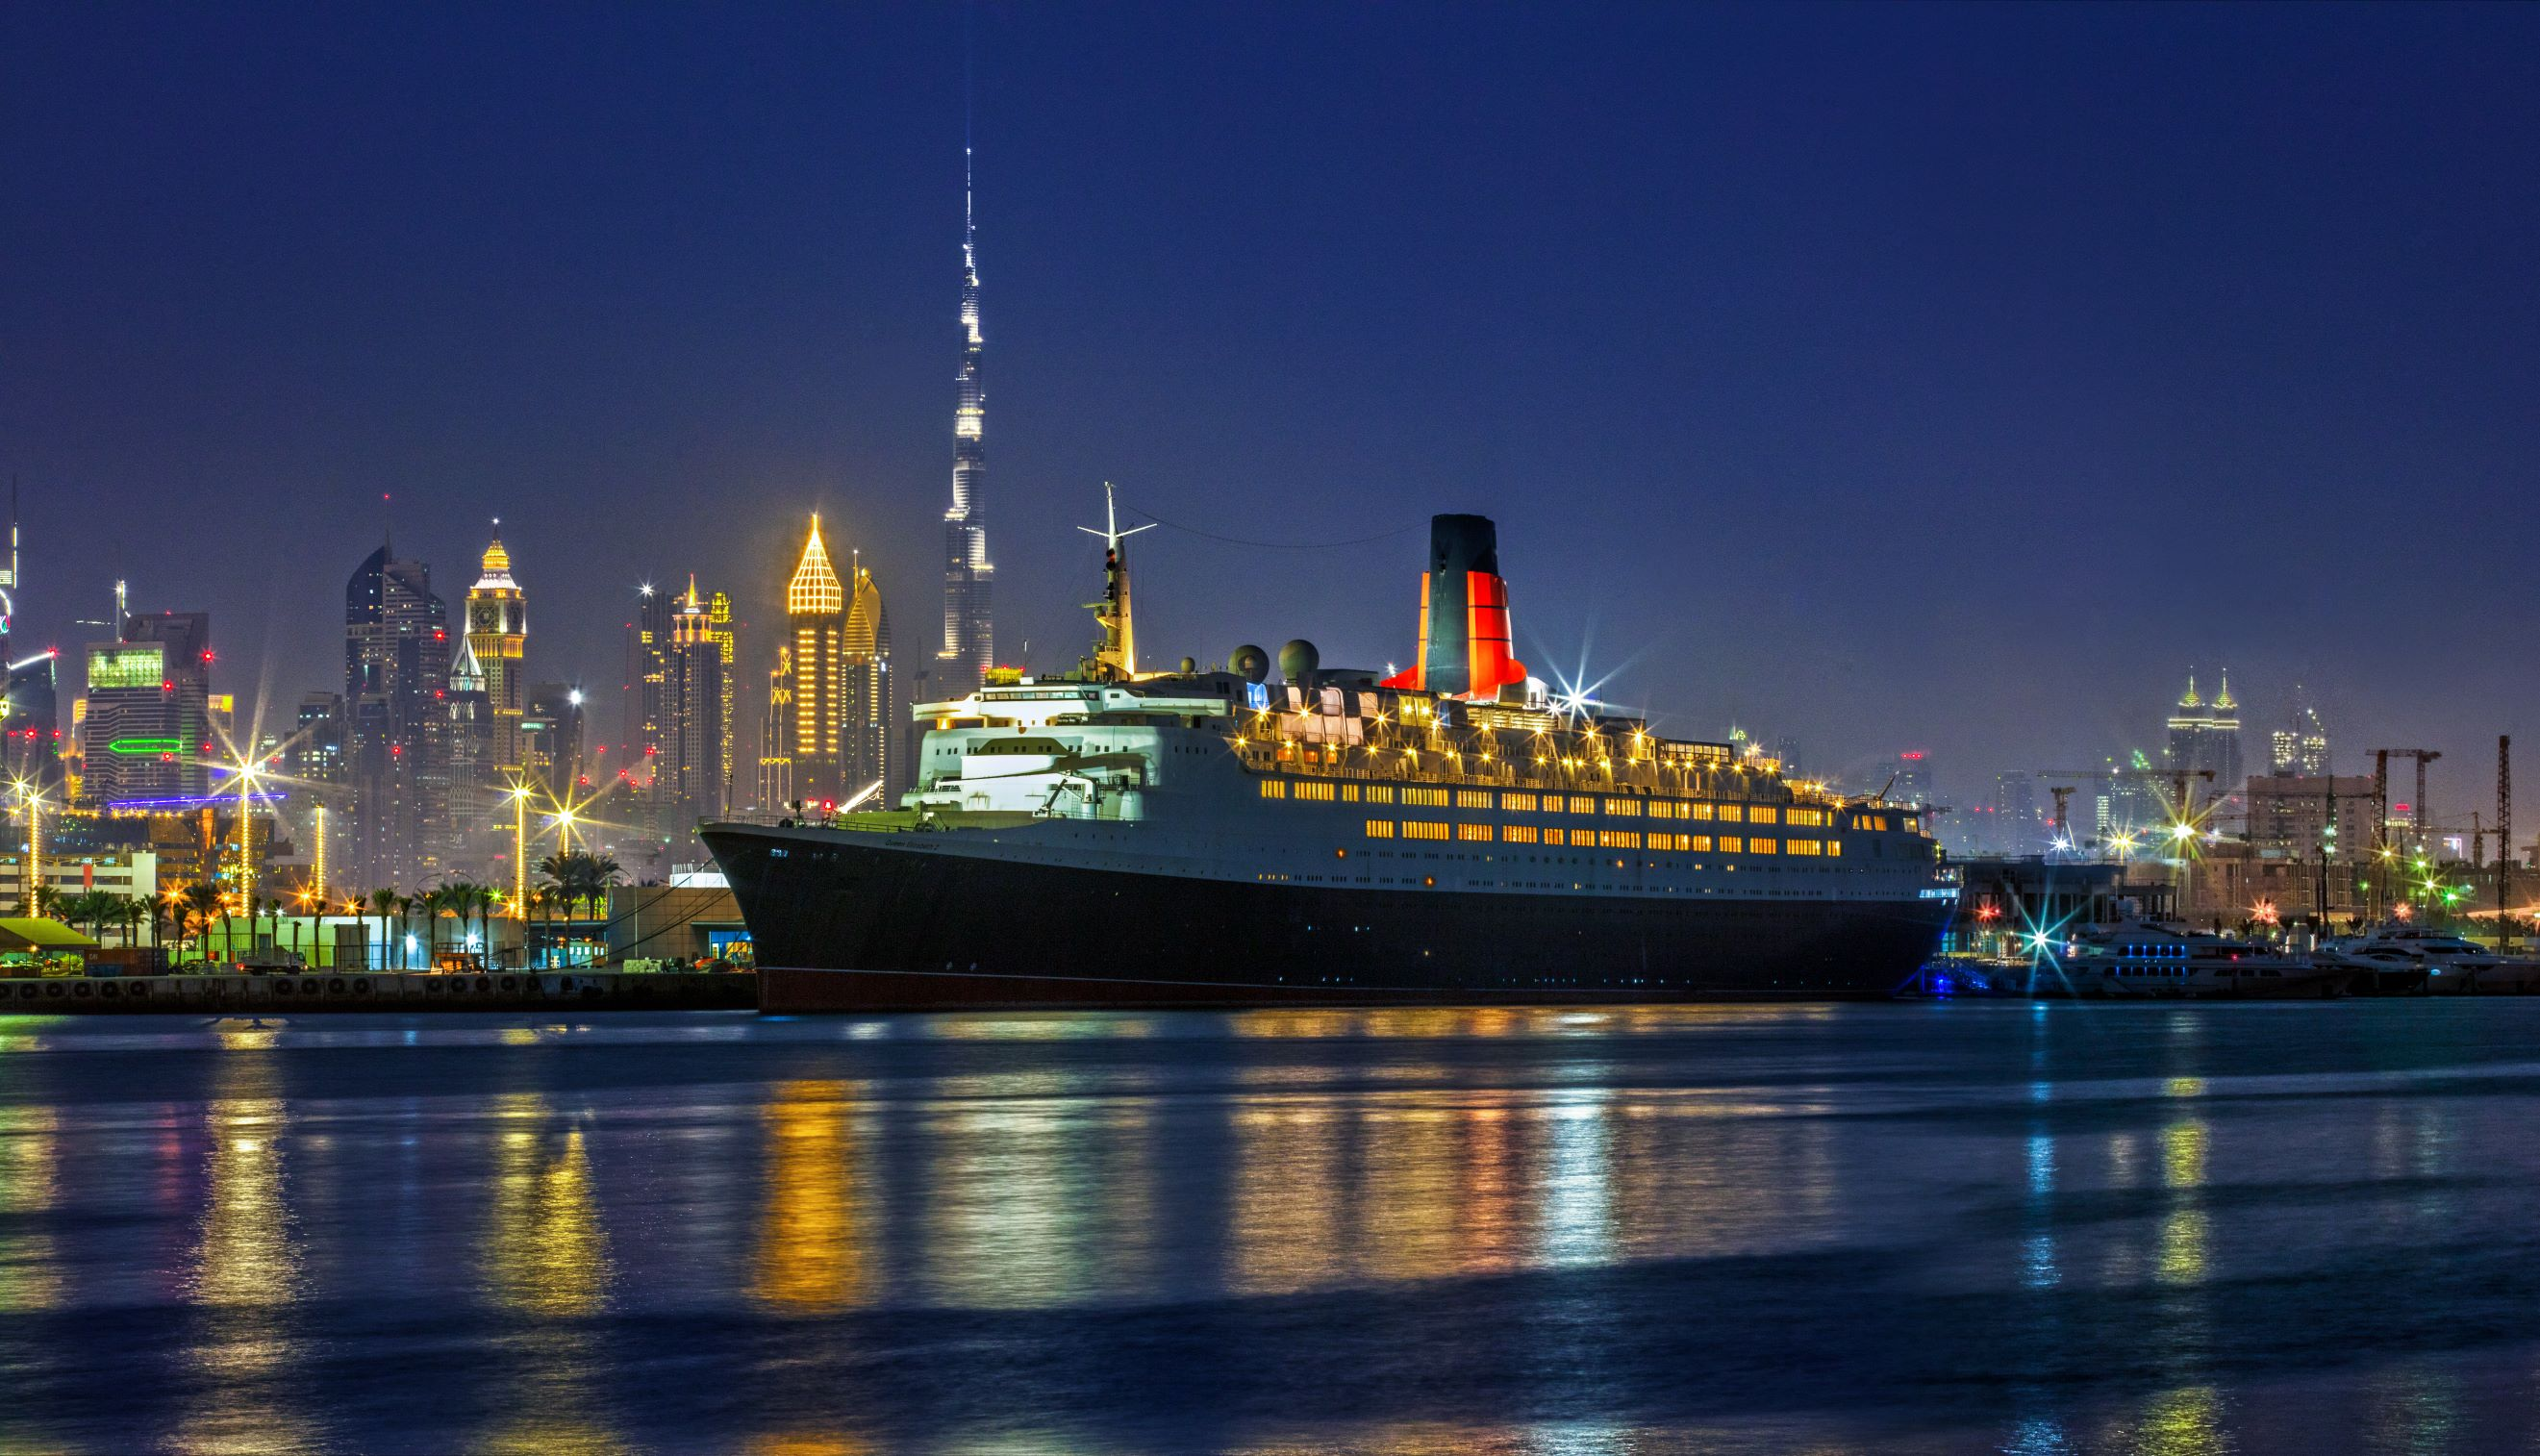 QE2_night profile_Low Res